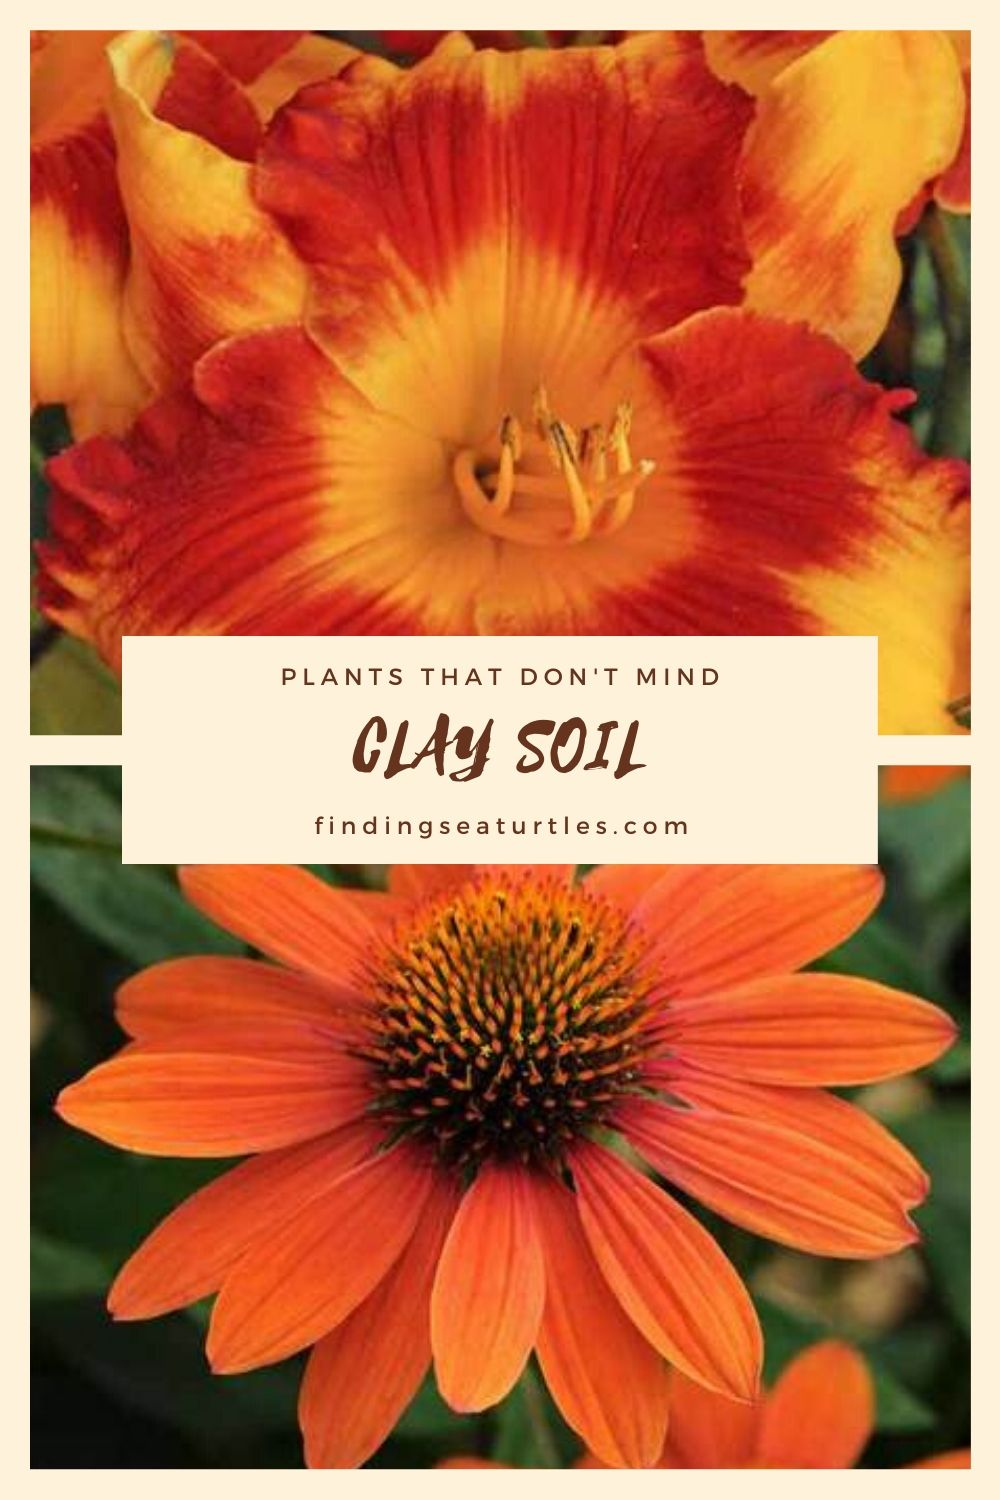 Plants that don't Mind Clay Soil #Perennials #ClayTolerantPerennials #PlantsThatThriveinClay #Gardening #ClaySoil #TolerantofClaySoils